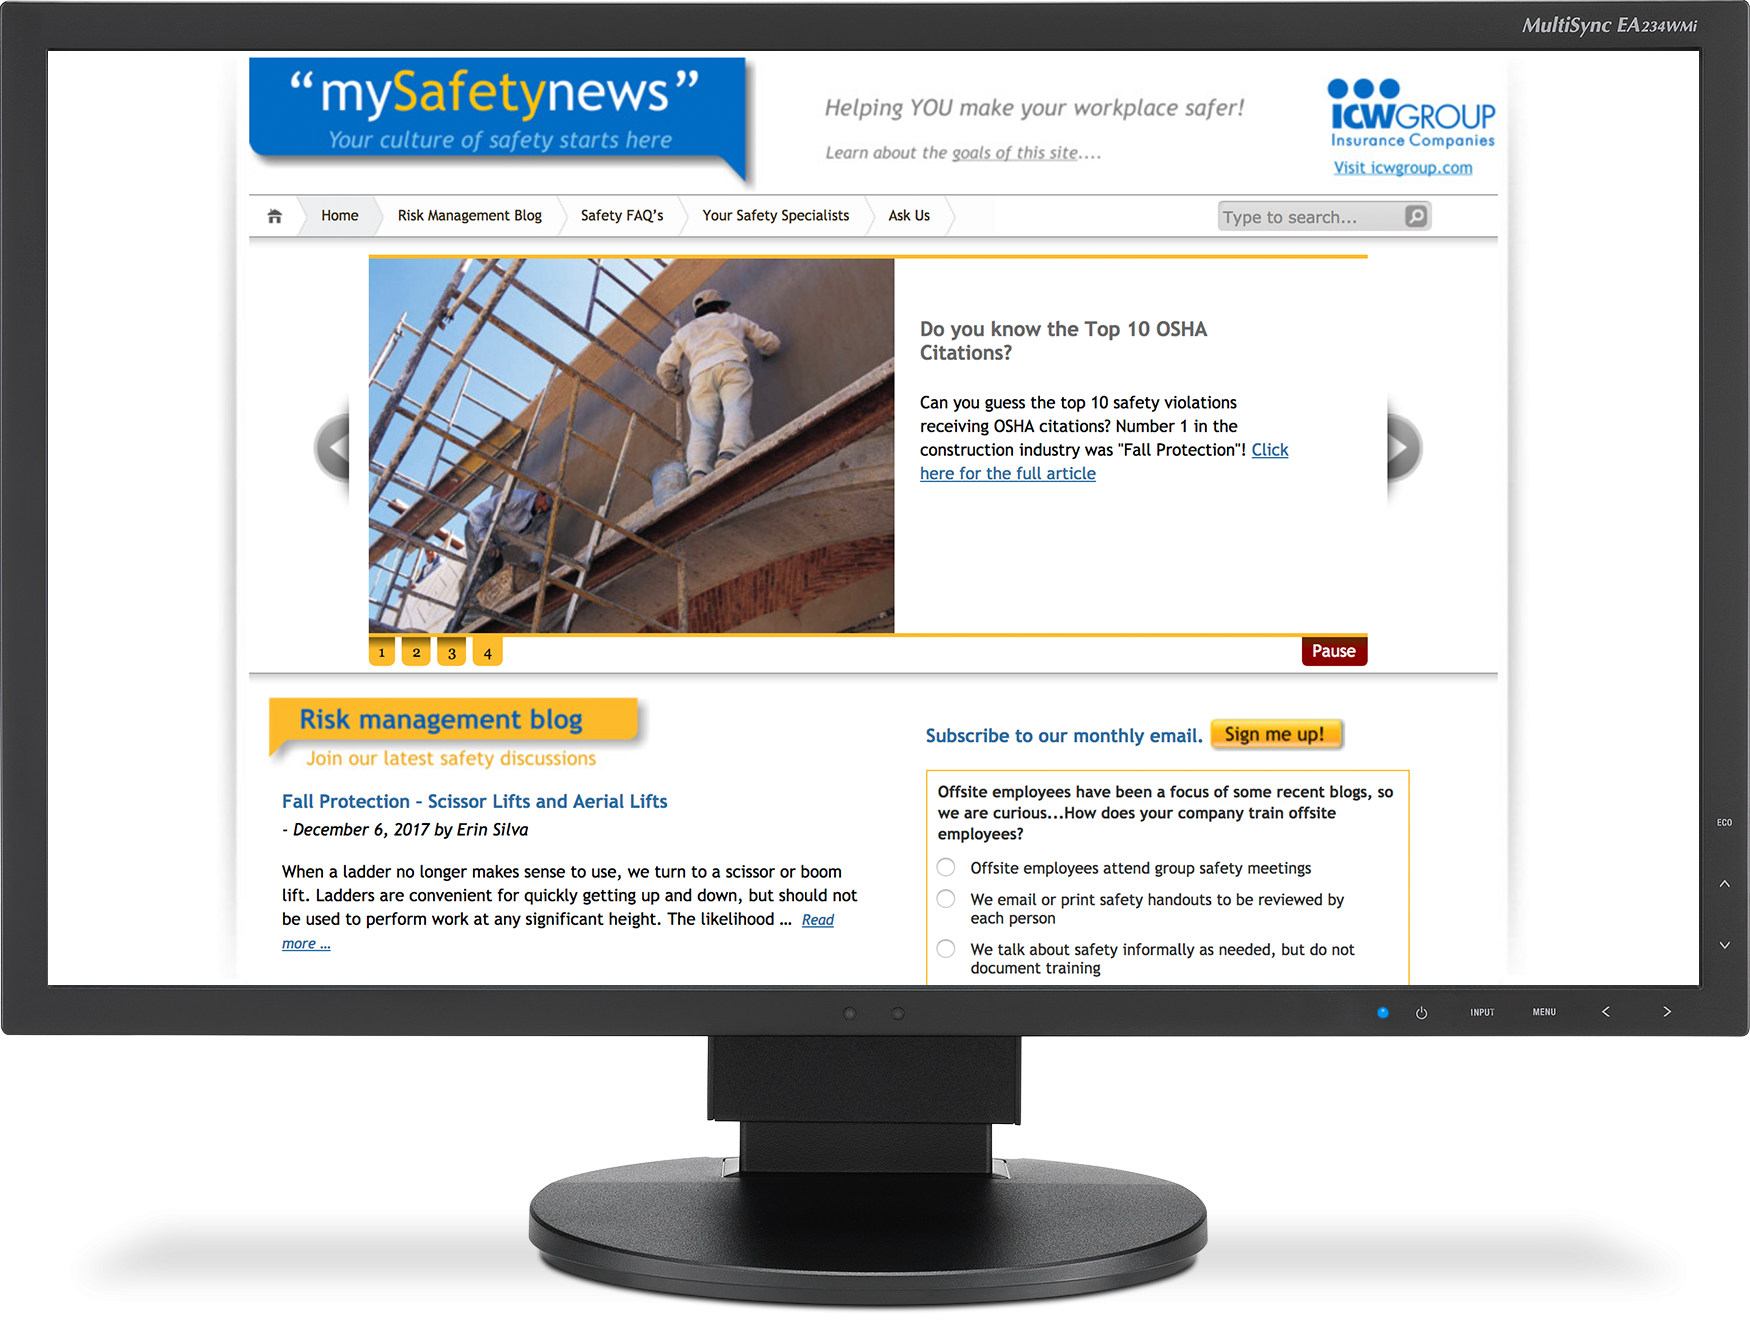 mySafetynews displaying on a monitor